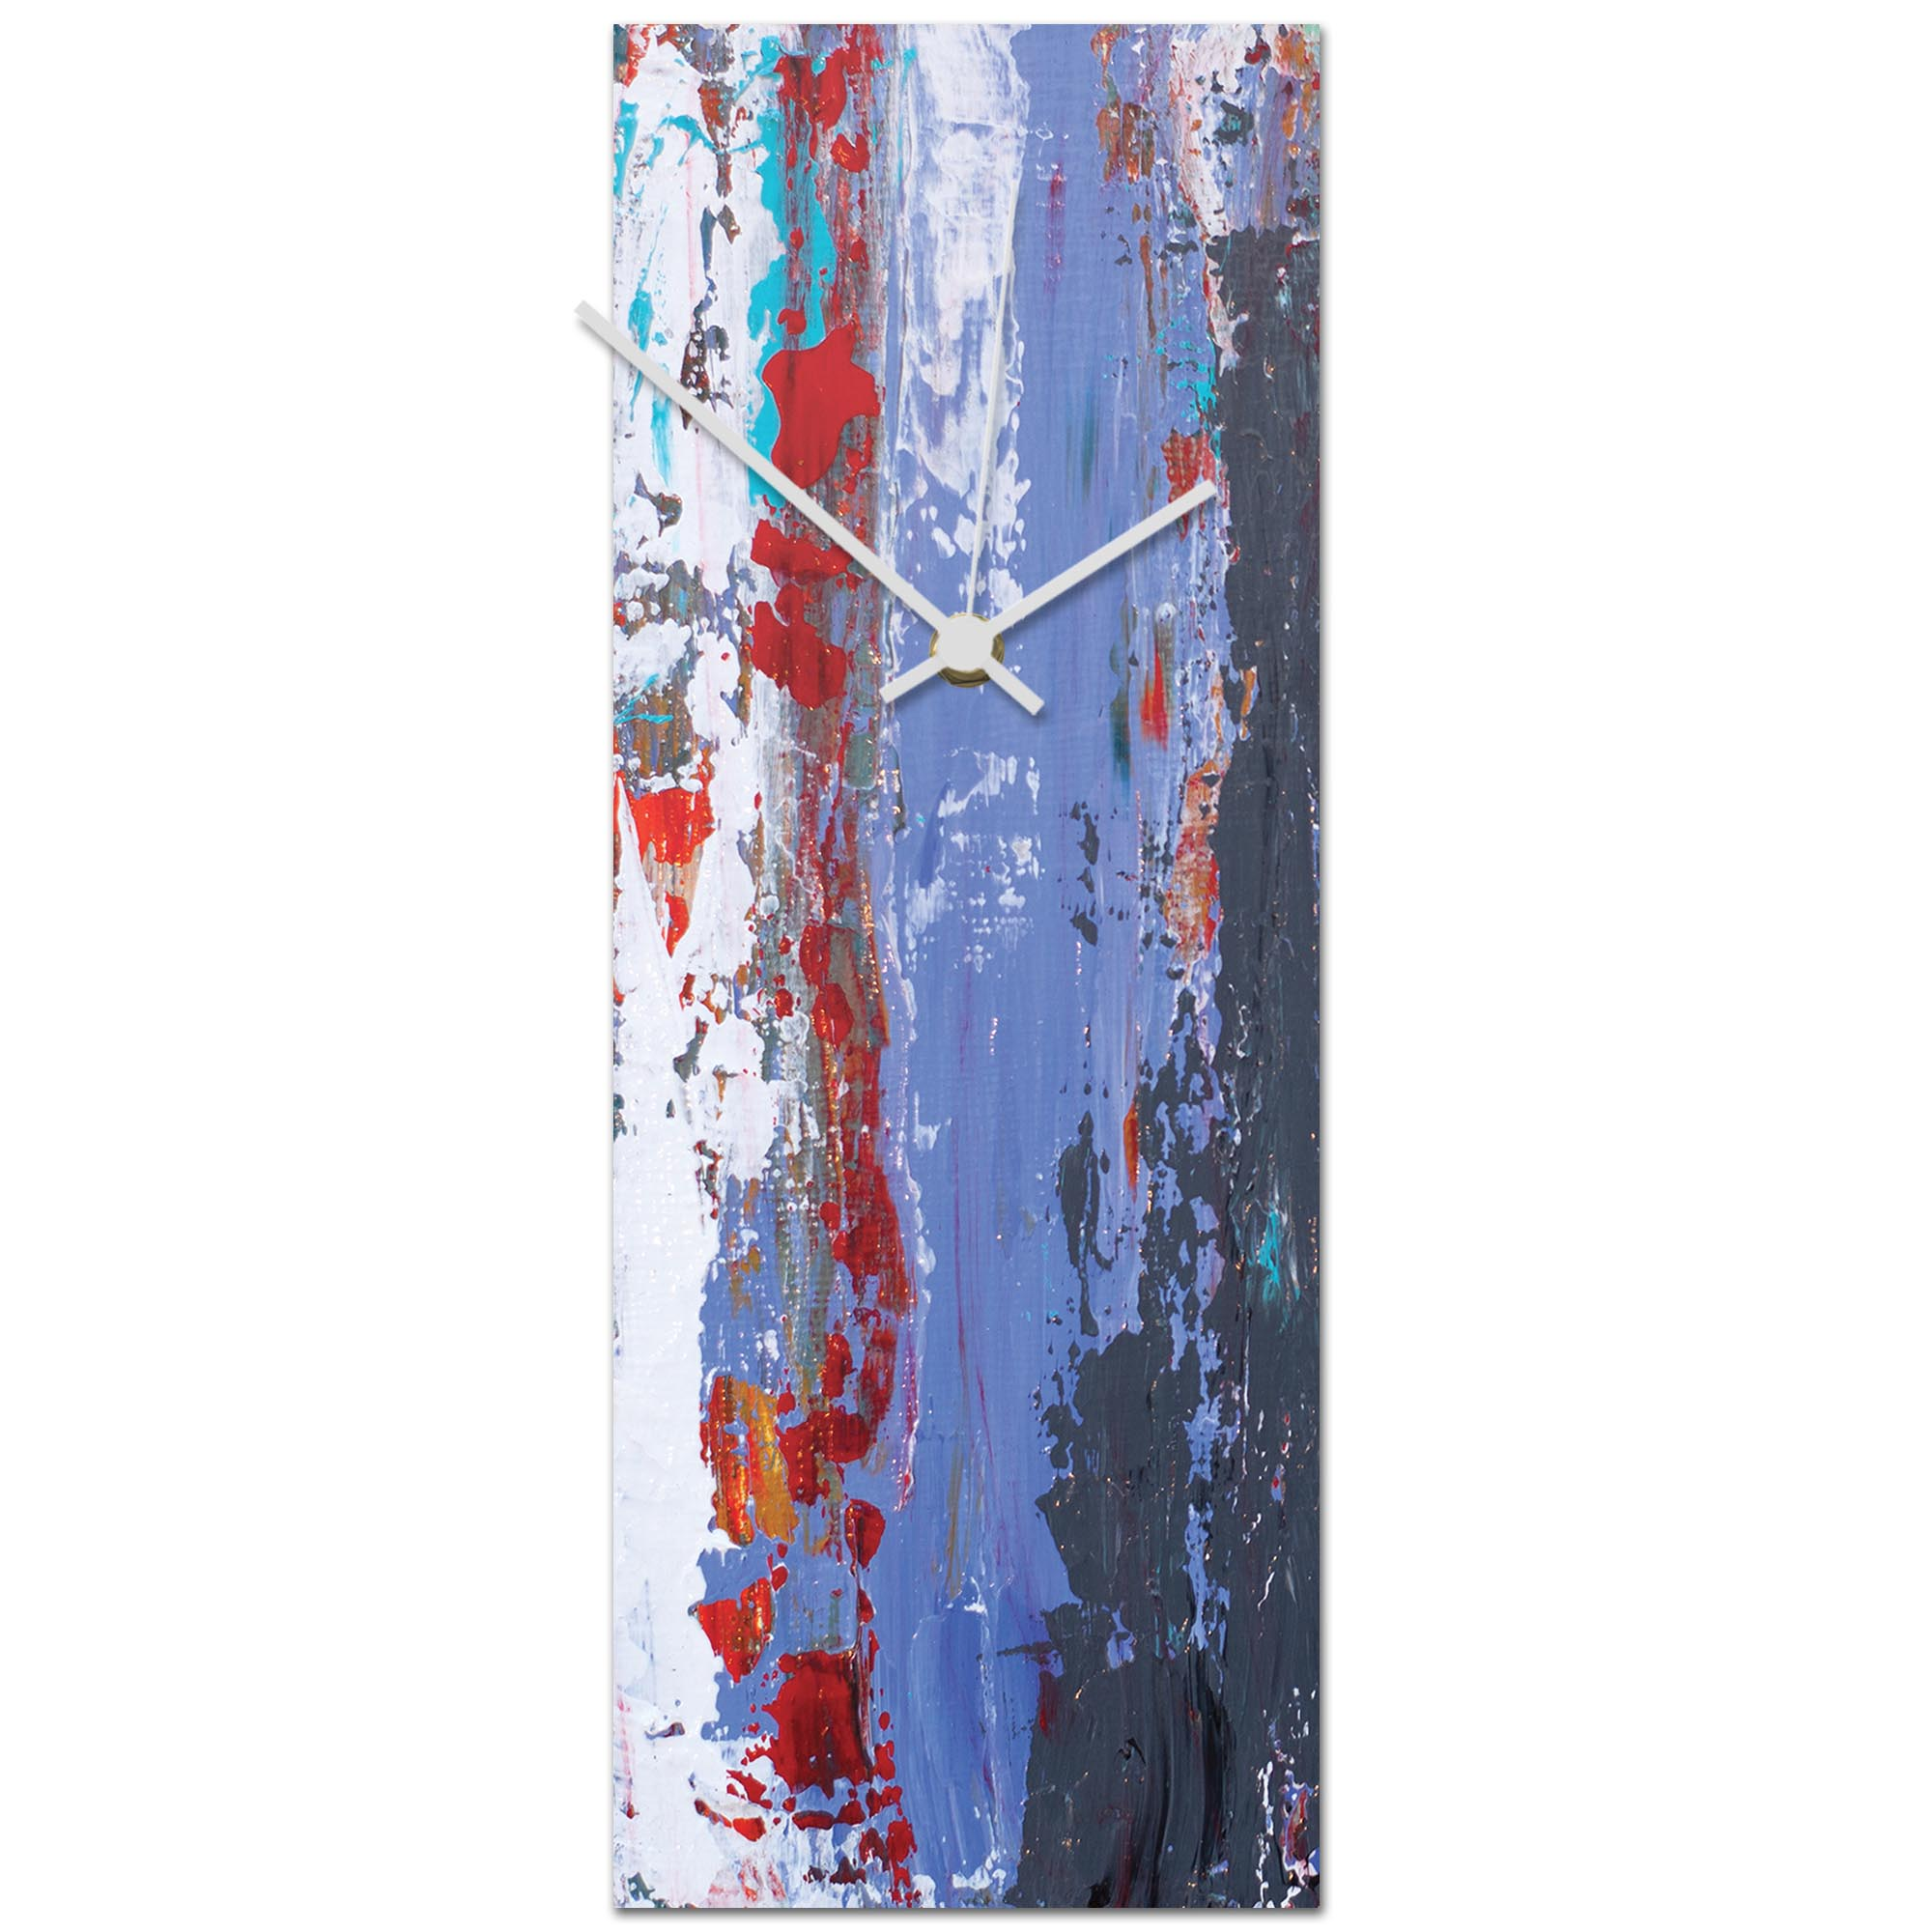 Urban Cool v1 Clock 6x16in. Metal